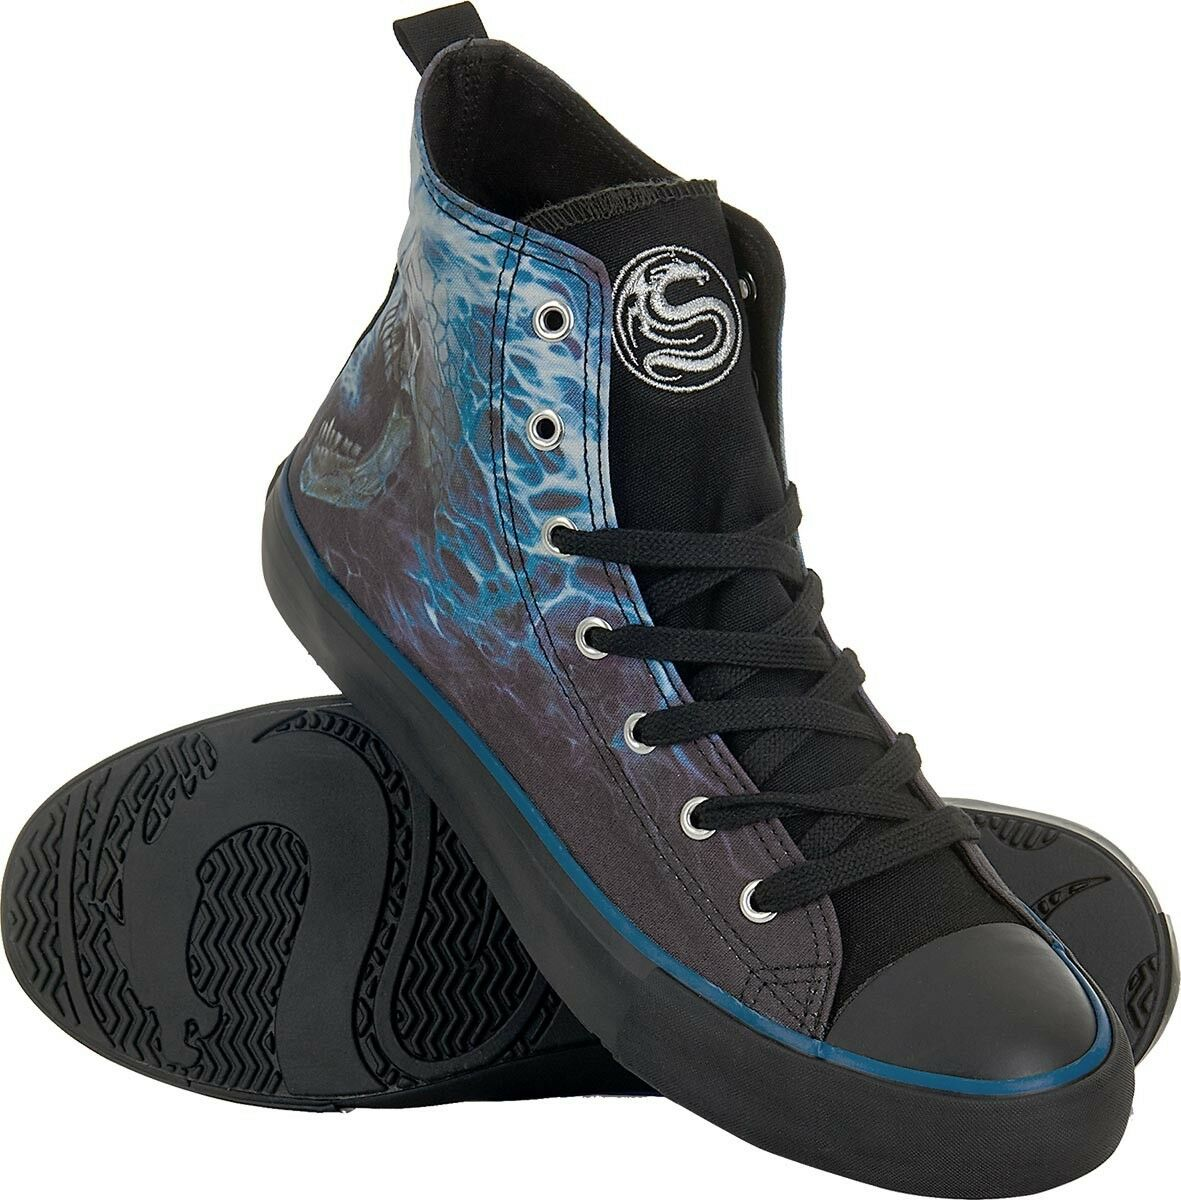 Spiral Flaming Spine Sneaker Schuh Tattoo Biker Reaper Gothic #8100